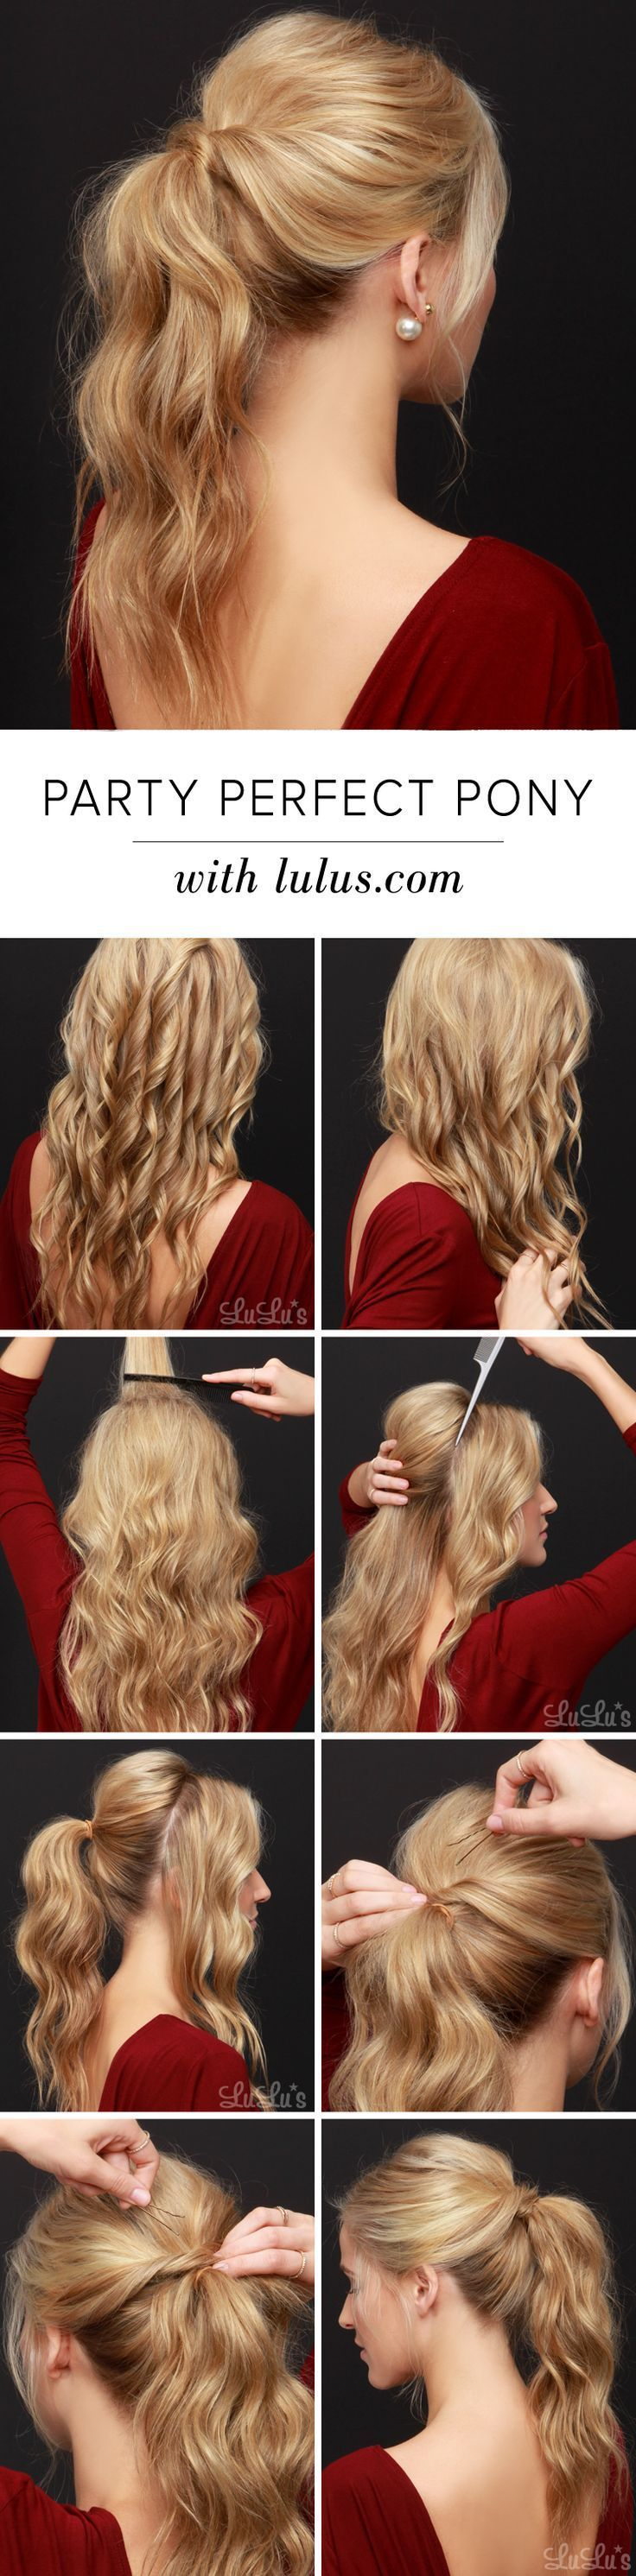 Nice tutorials fast and easy hairstyles styles d short